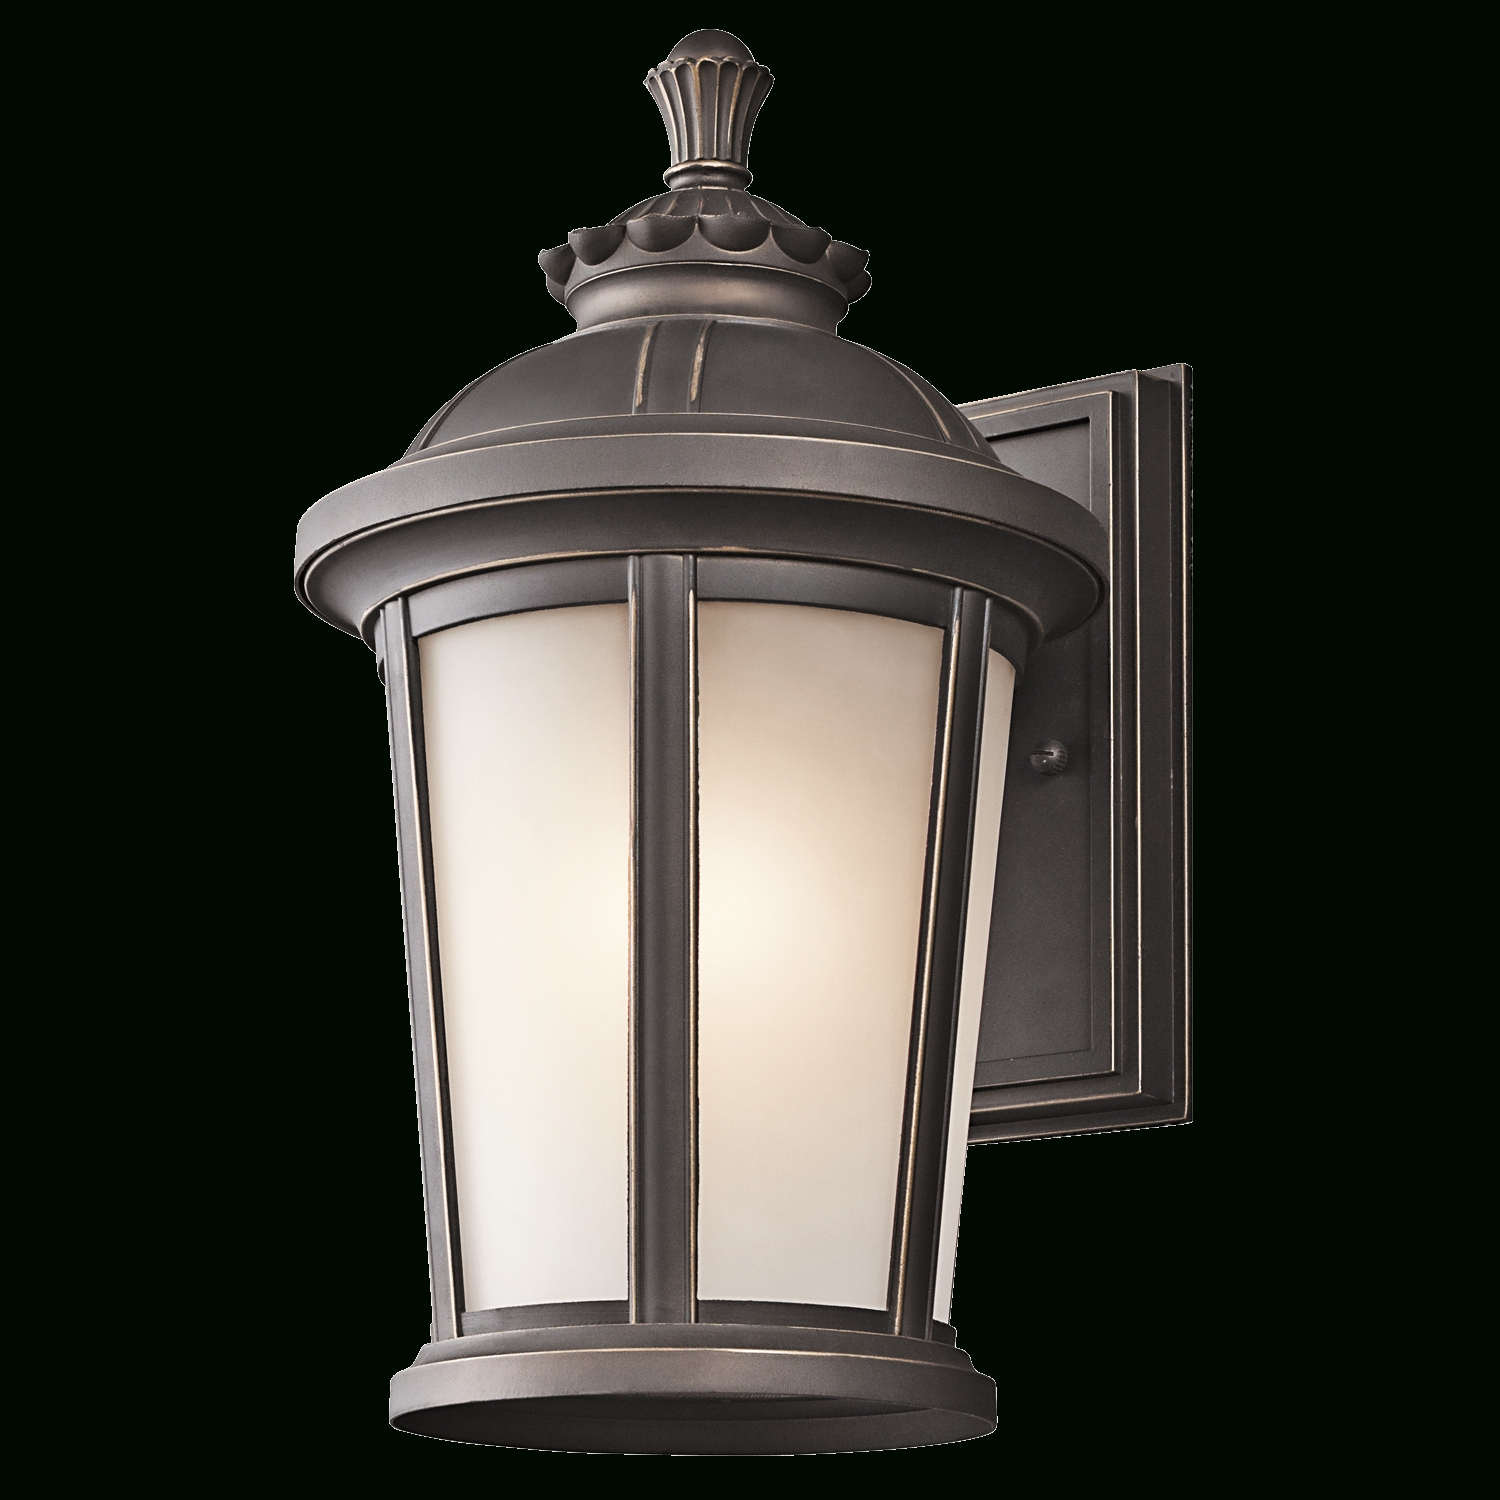 Garden Porch Light Fixtures At Wayfair Regarding Well Known Missionshaker Outdoor Wall Lighting Wayfair Manhattan 1 Light (View 5 of 20)